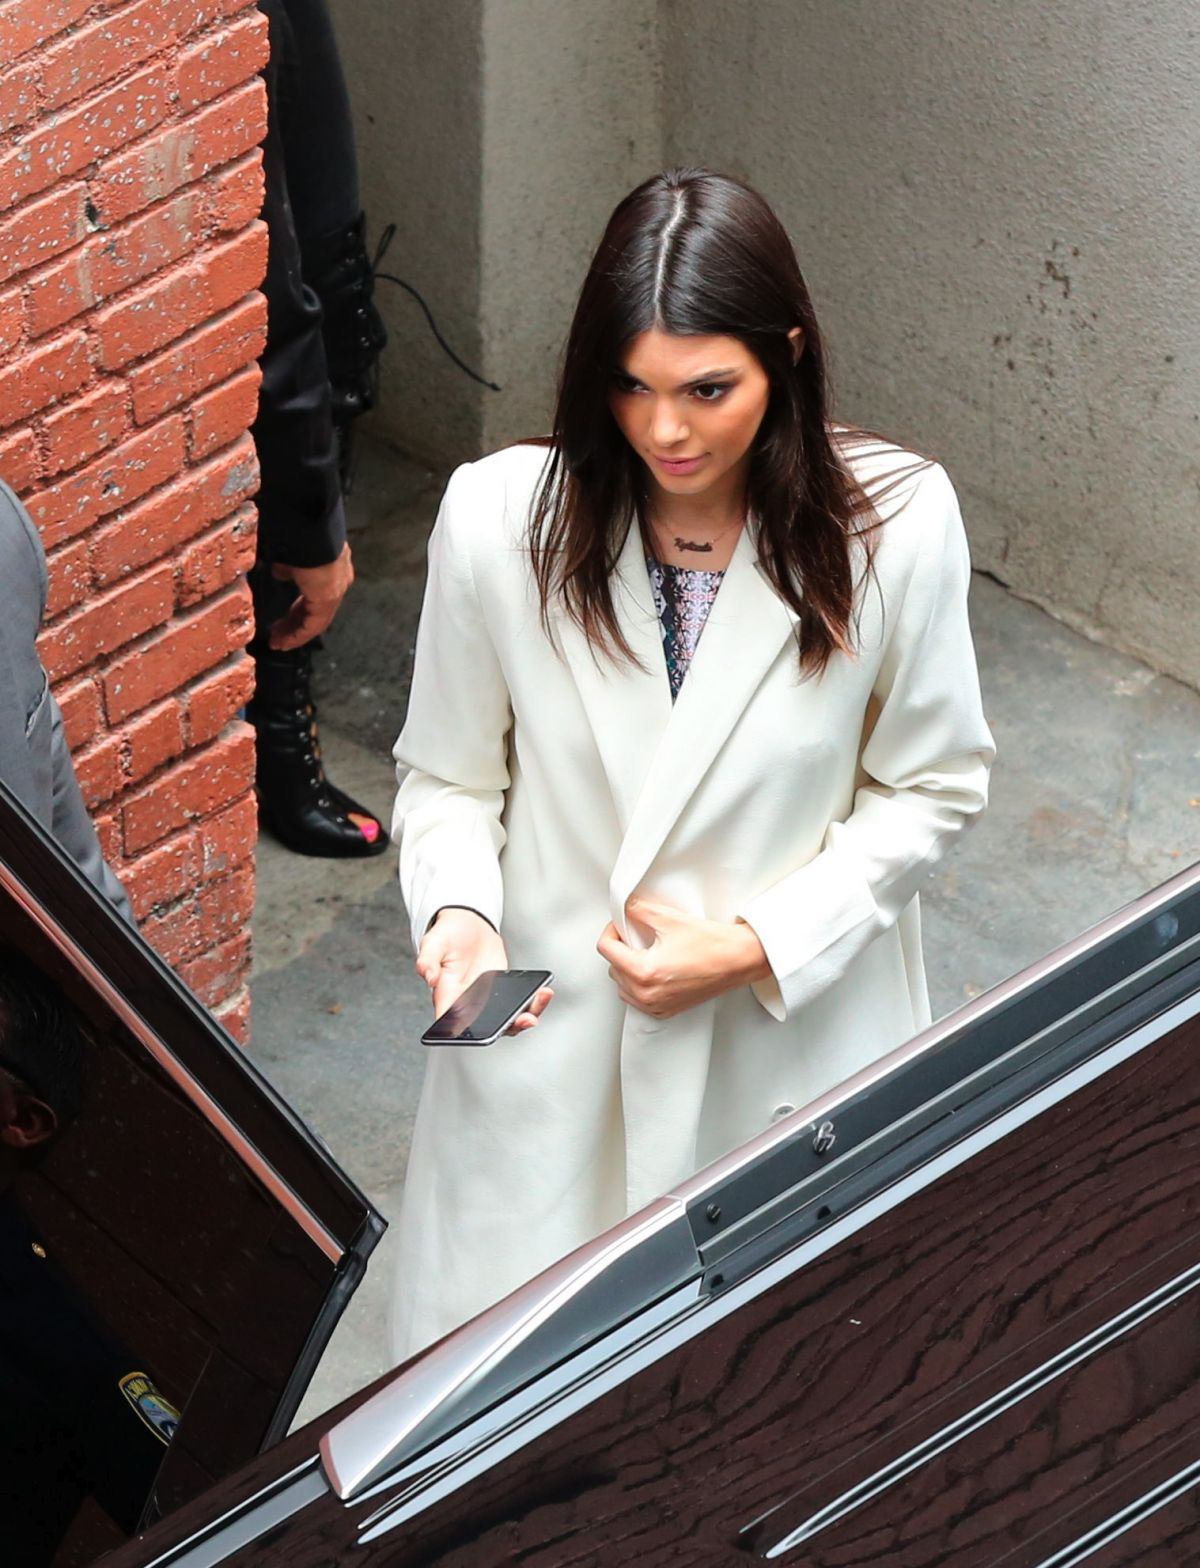 KENDALL JENNER Leaves Pacsun Store in Santa Monica 05/30/2015